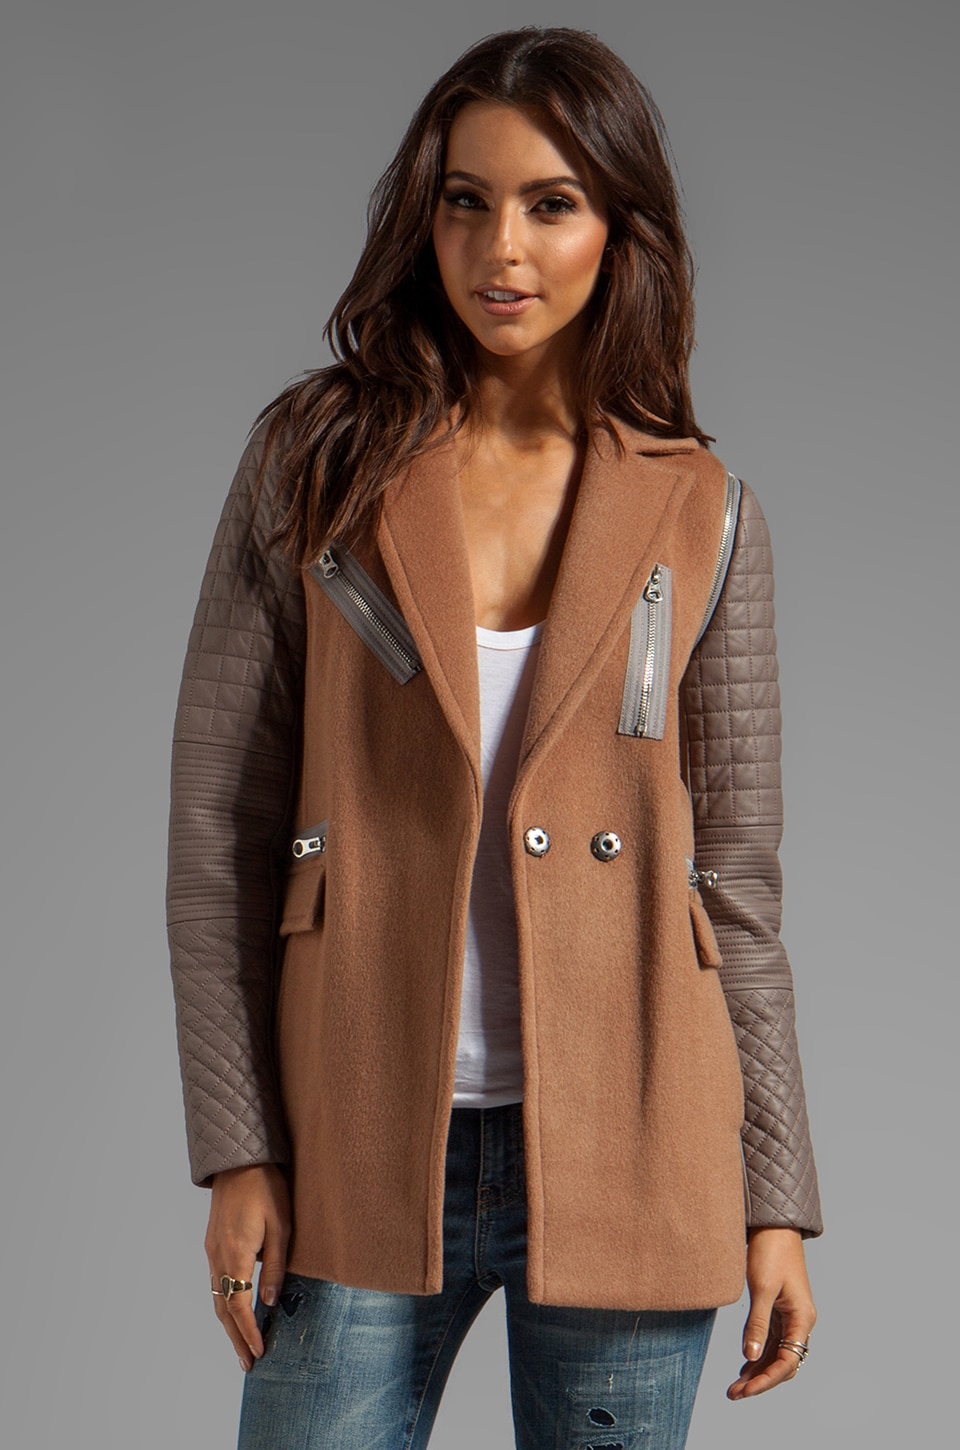 Rebecca Taylor RUNWAY Removable Leather Sleeved Coat in Rose